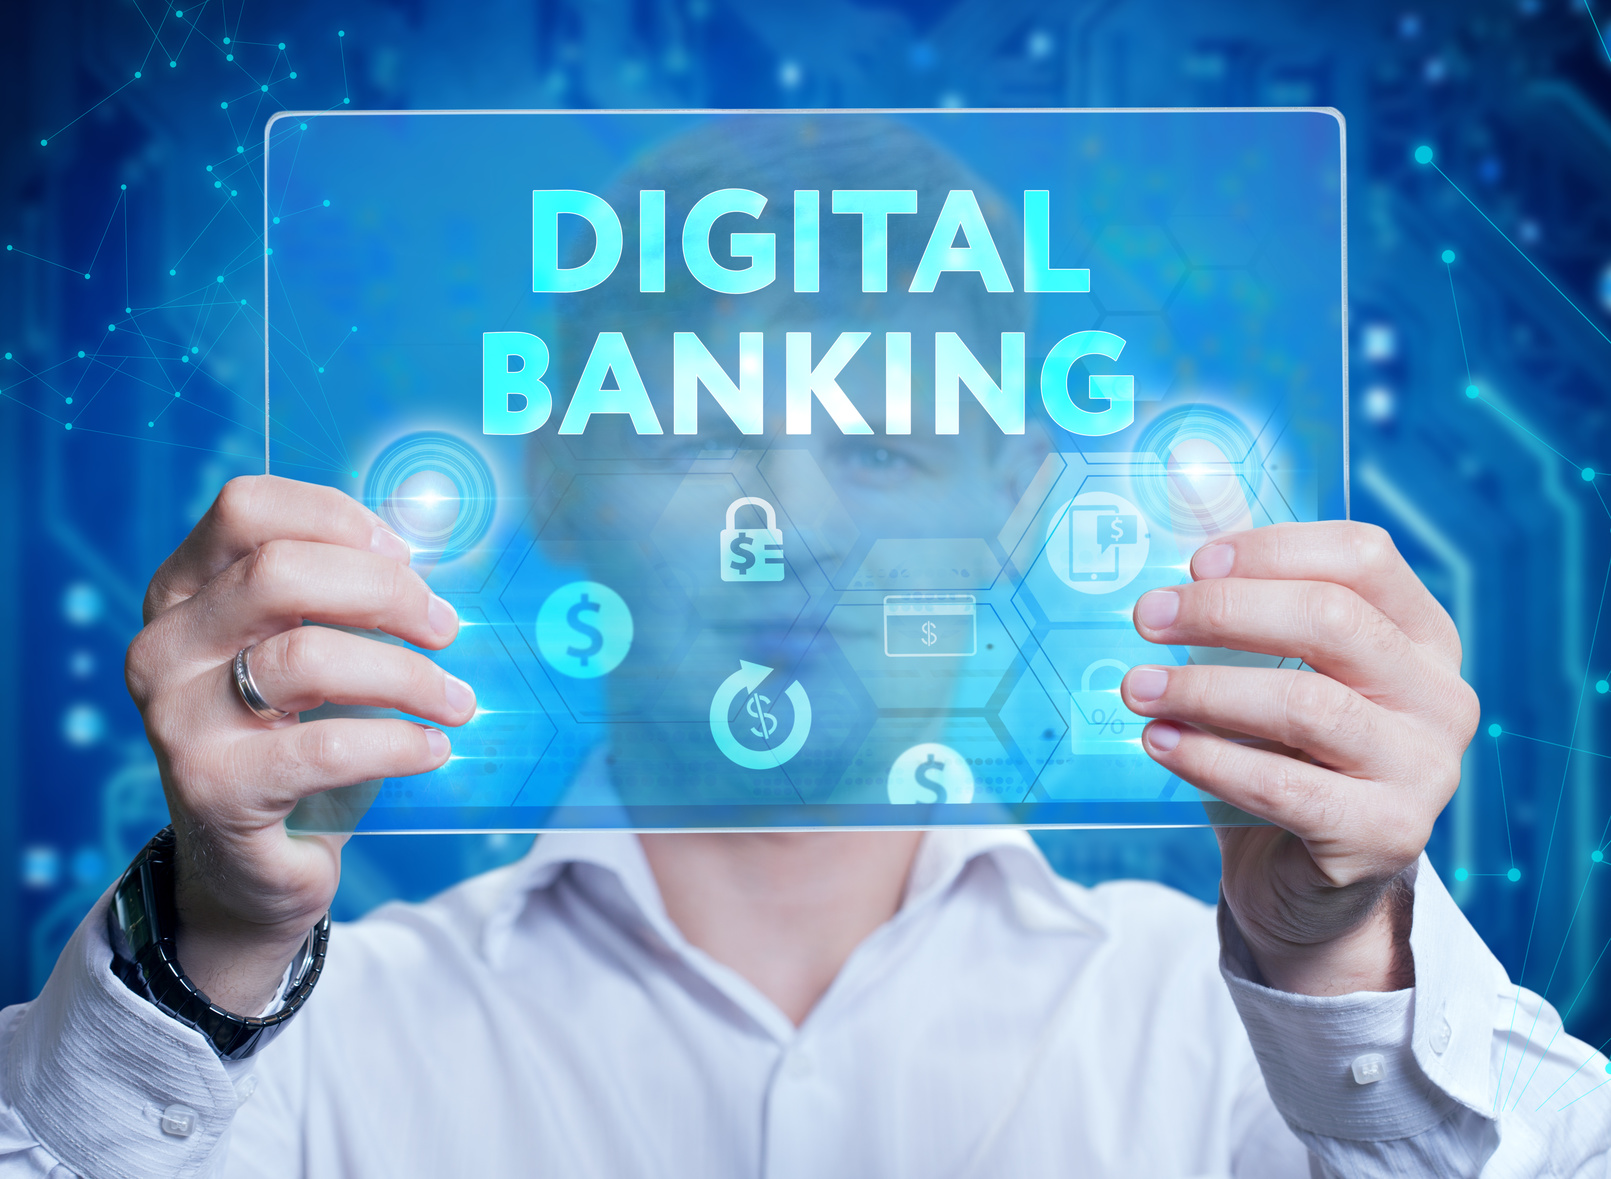 Digital Banking Market Thriving At A Tremendous Growth | Urban FT, Kony, Backbase, Technisys, Infosys